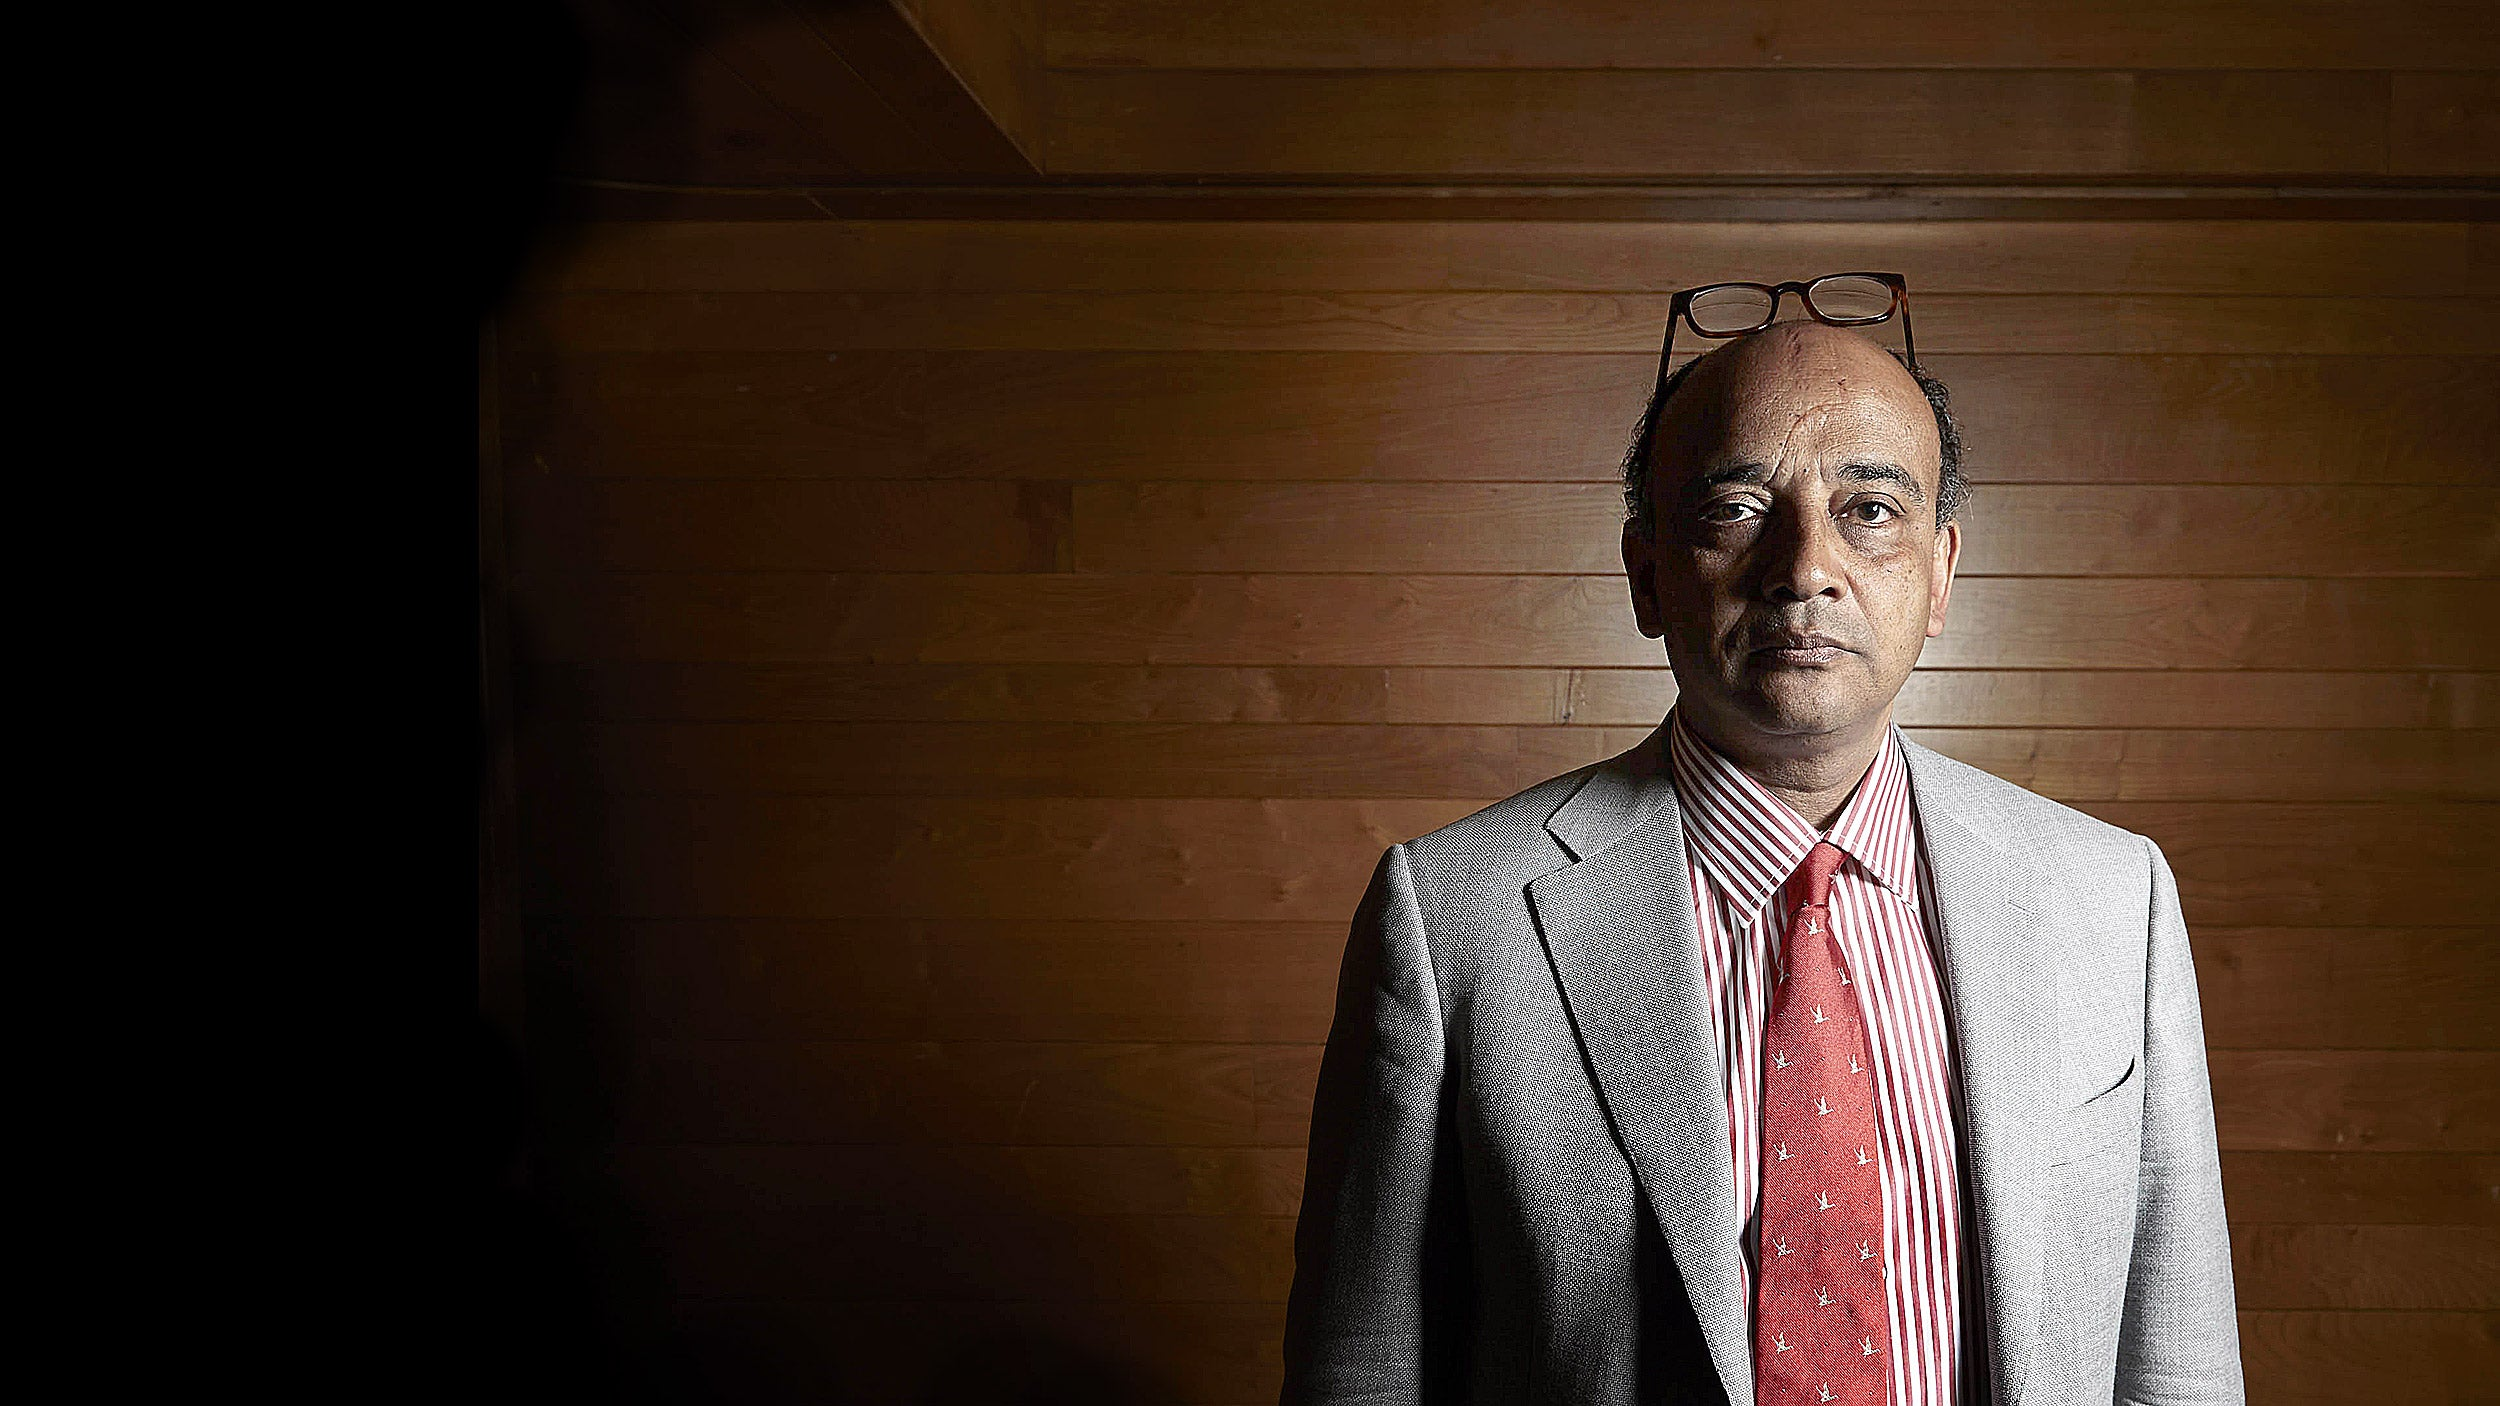 Kwame Anthony Appiah in front of a wooden wall